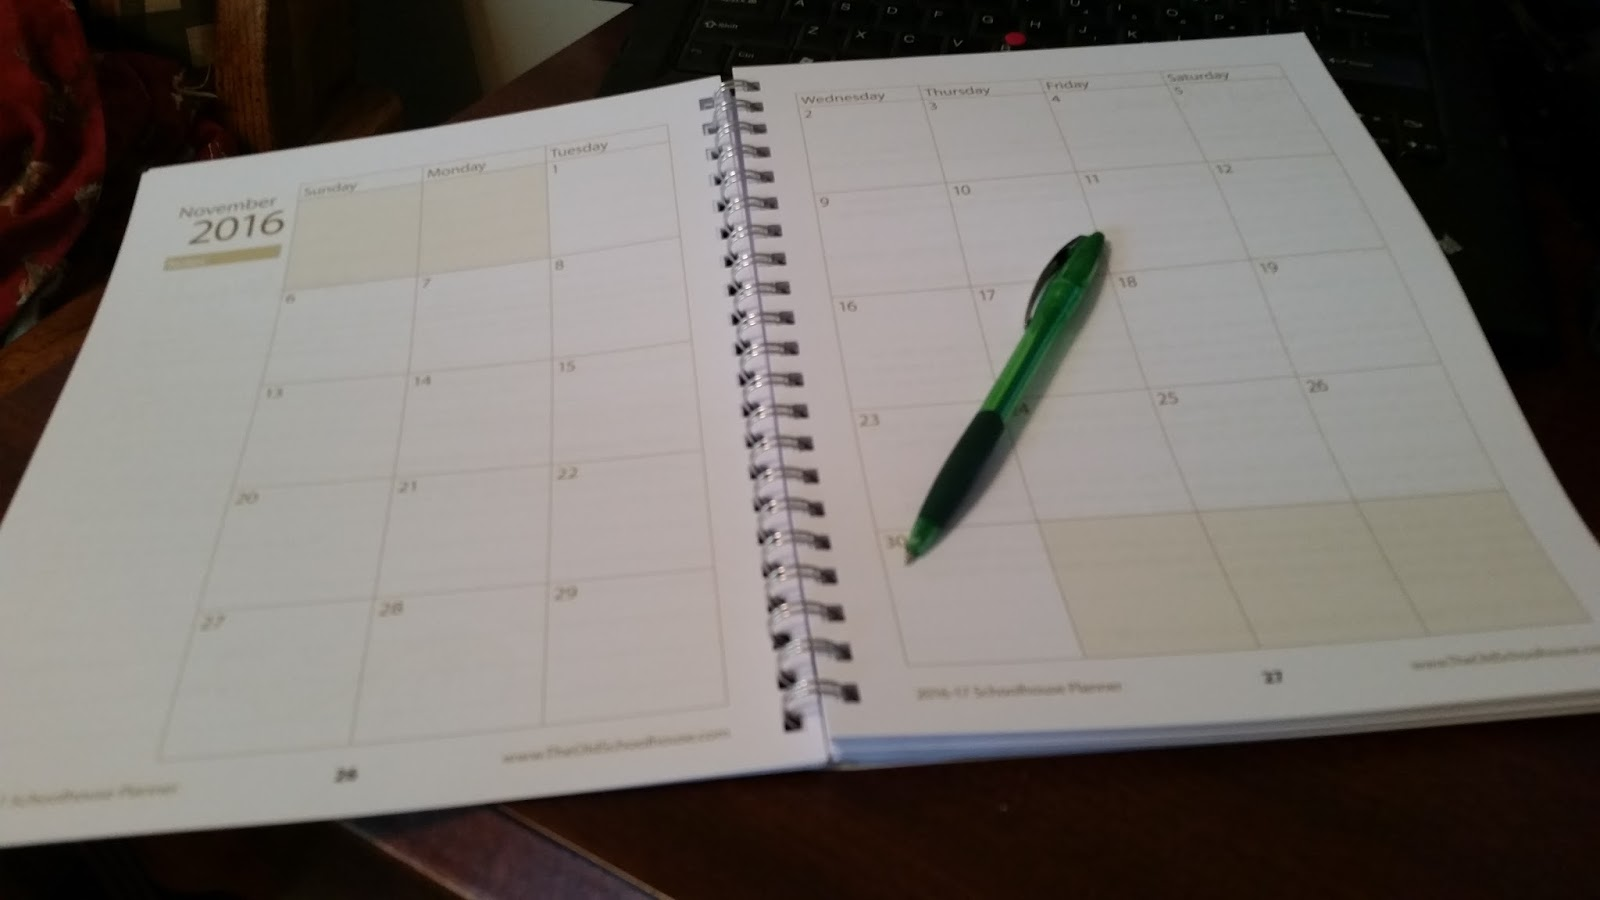 ... the actual calendar pages the last month in this calendar is june 2017